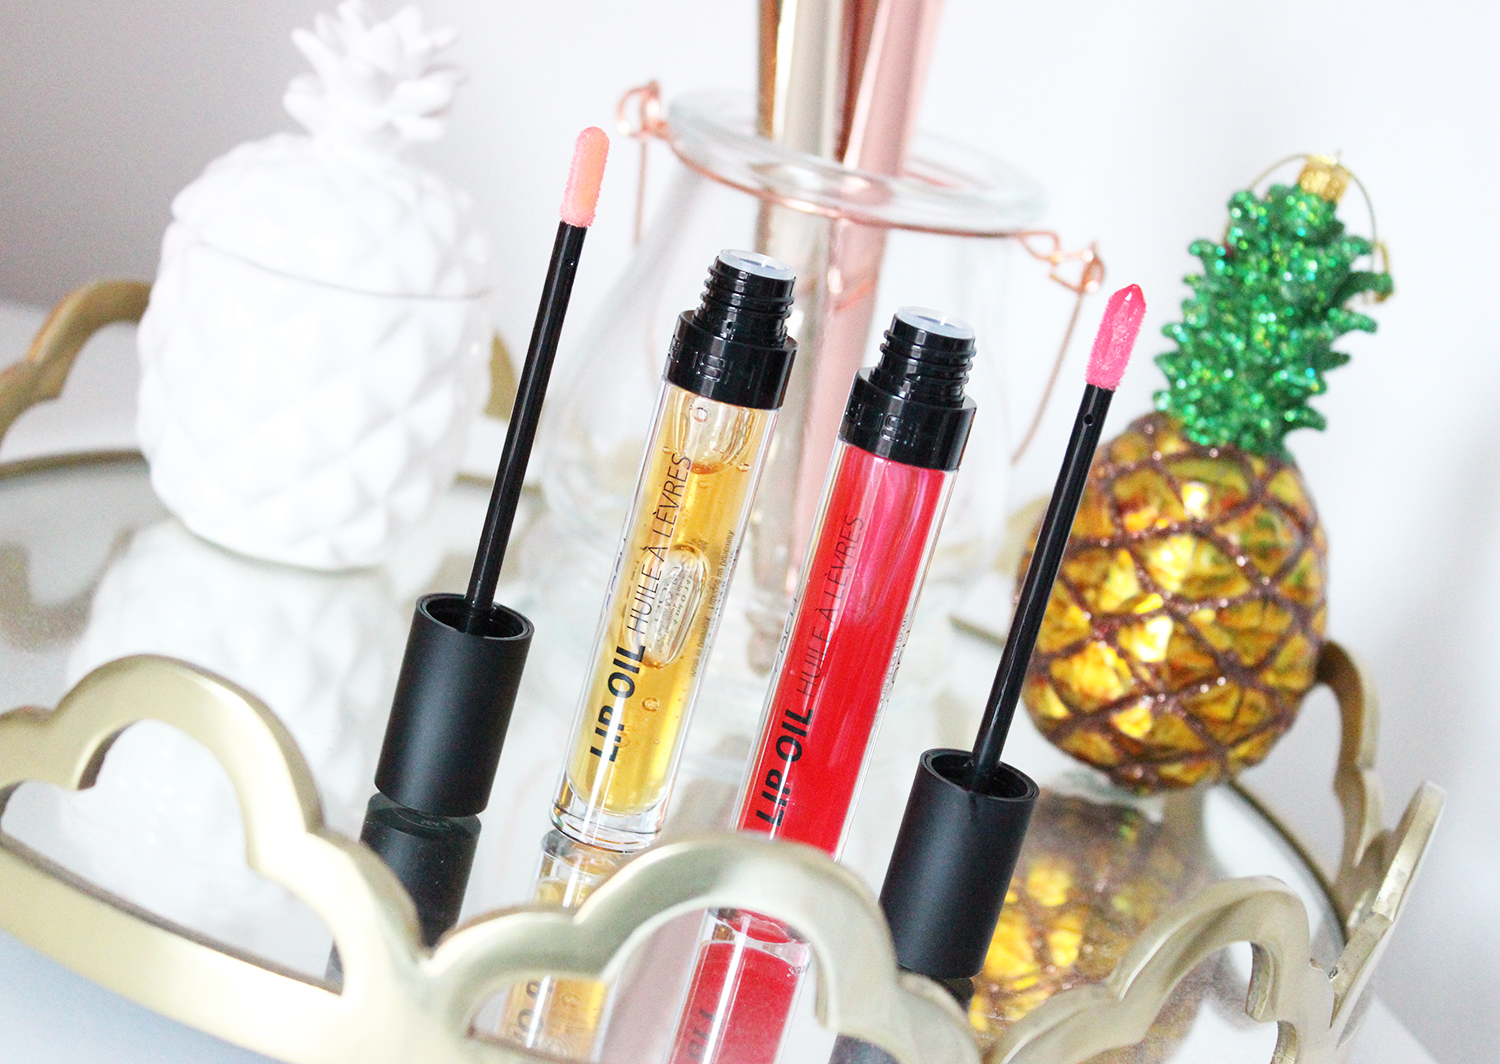 review: GOSH lip oils - Clarins dupe